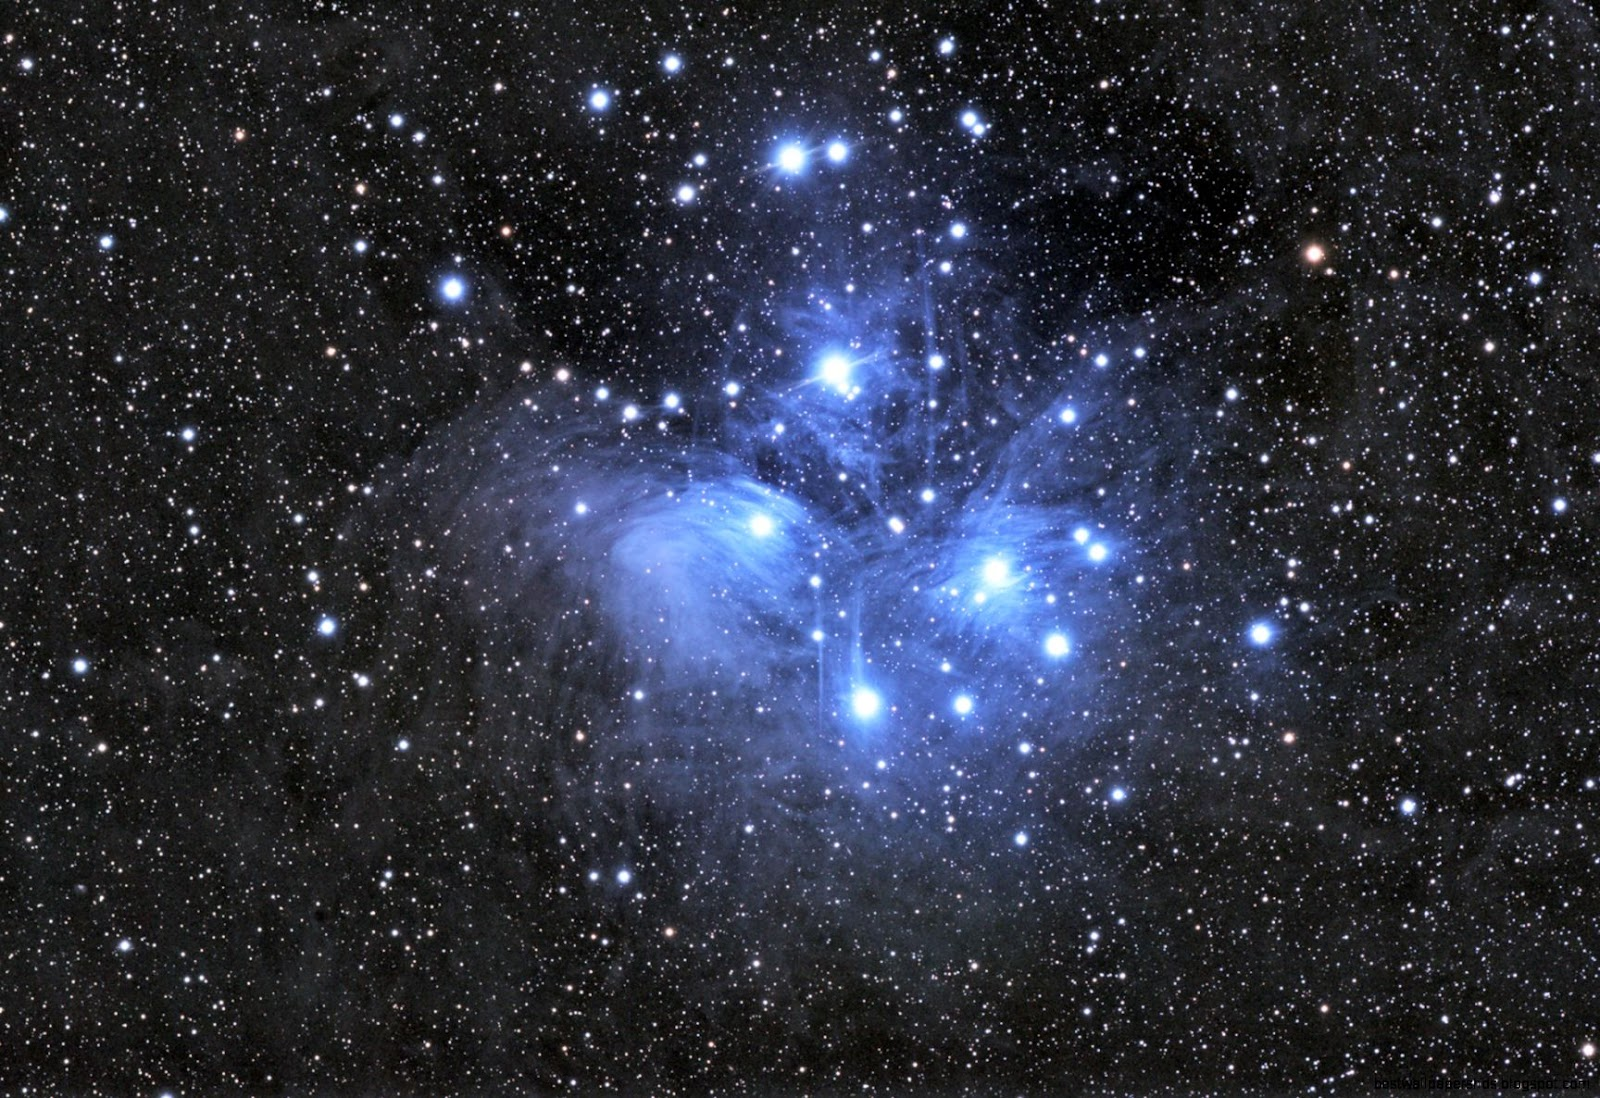 Pleiades Star Cluster Names